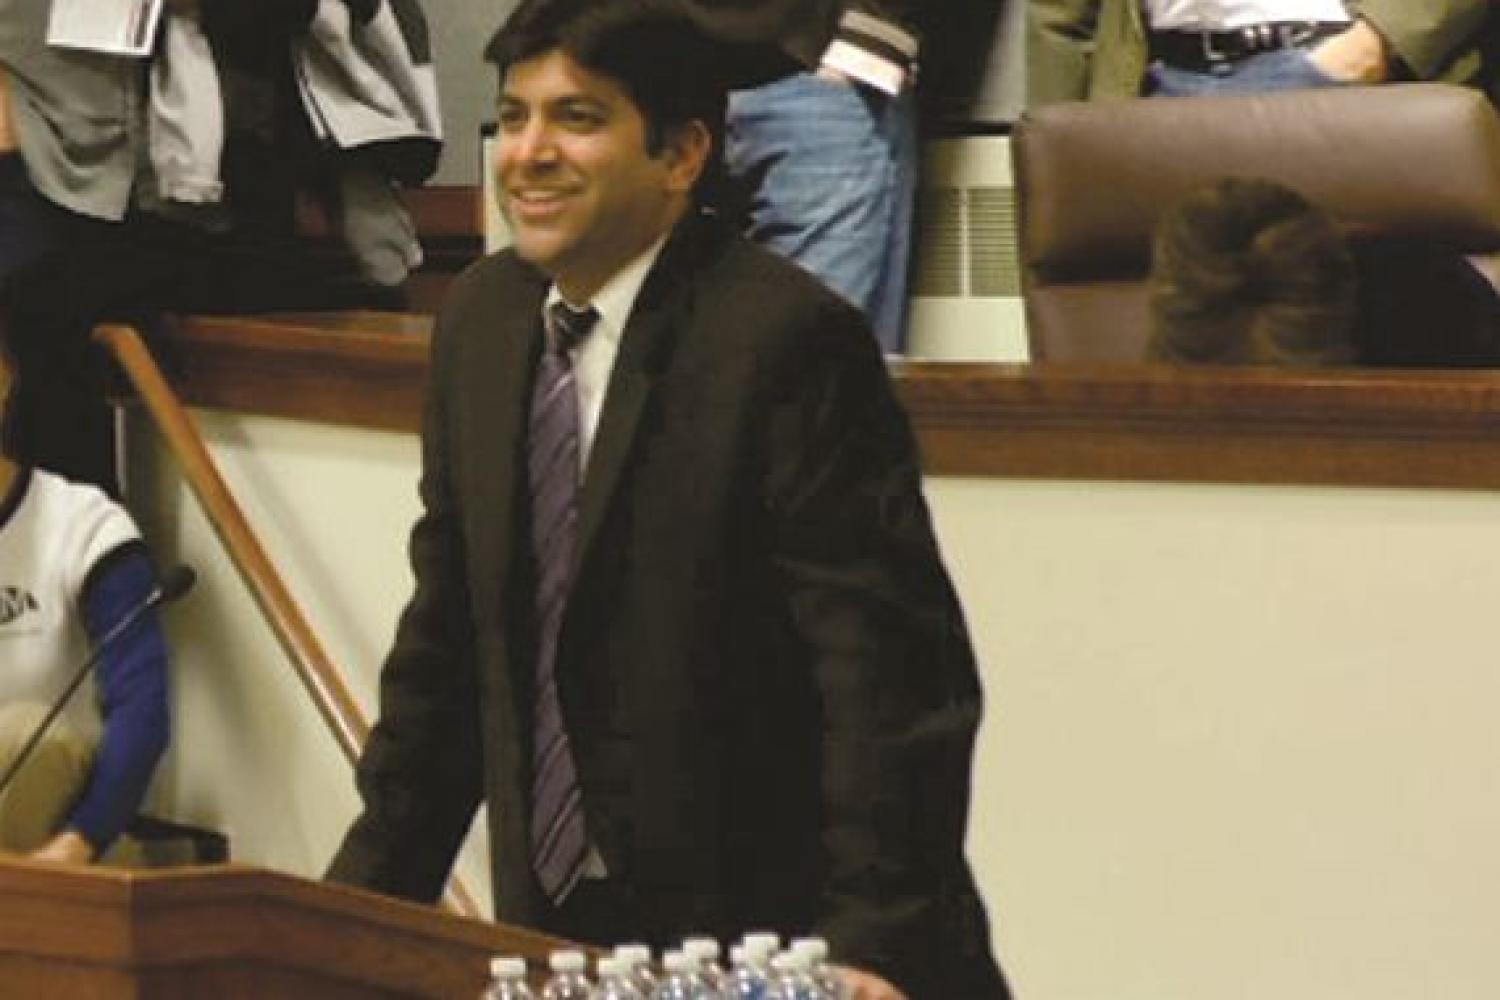 Startup Colorado engages students and alums with an entrepreneurial spirit. White House Chief Technology Officer Aneesh Chopra spoke at the launch of Startup Colorado.